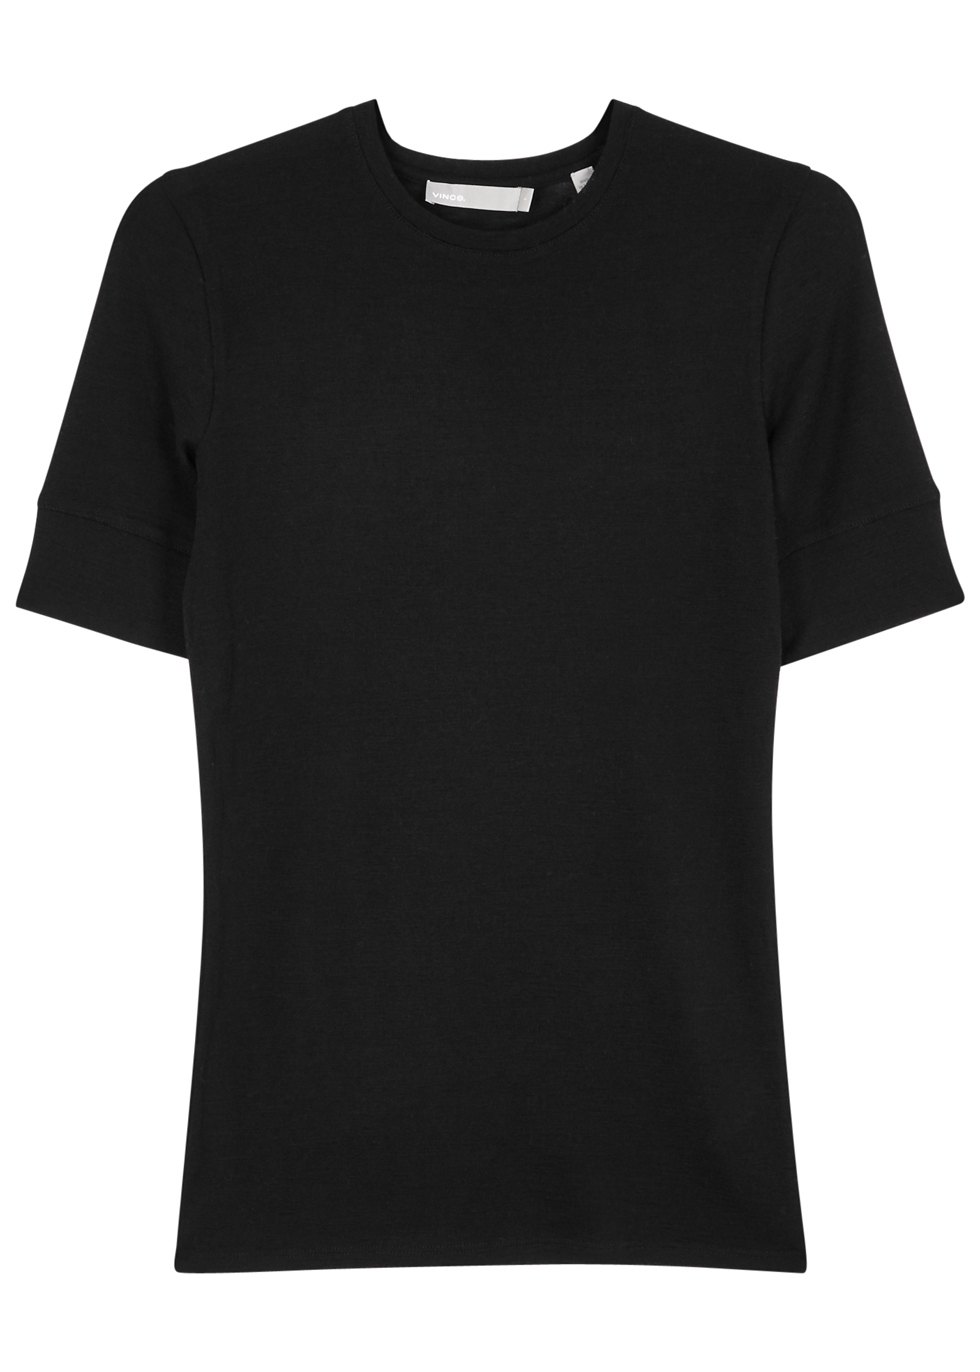 Black Wool T Shirt - pattern: plain; style: t-shirt; predominant colour: black; occasions: casual; length: standard; fibres: wool - 100%; fit: body skimming; neckline: crew; sleeve length: short sleeve; sleeve style: standard; texture group: knits/crochet; pattern type: knitted - fine stitch; season: a/w 2016